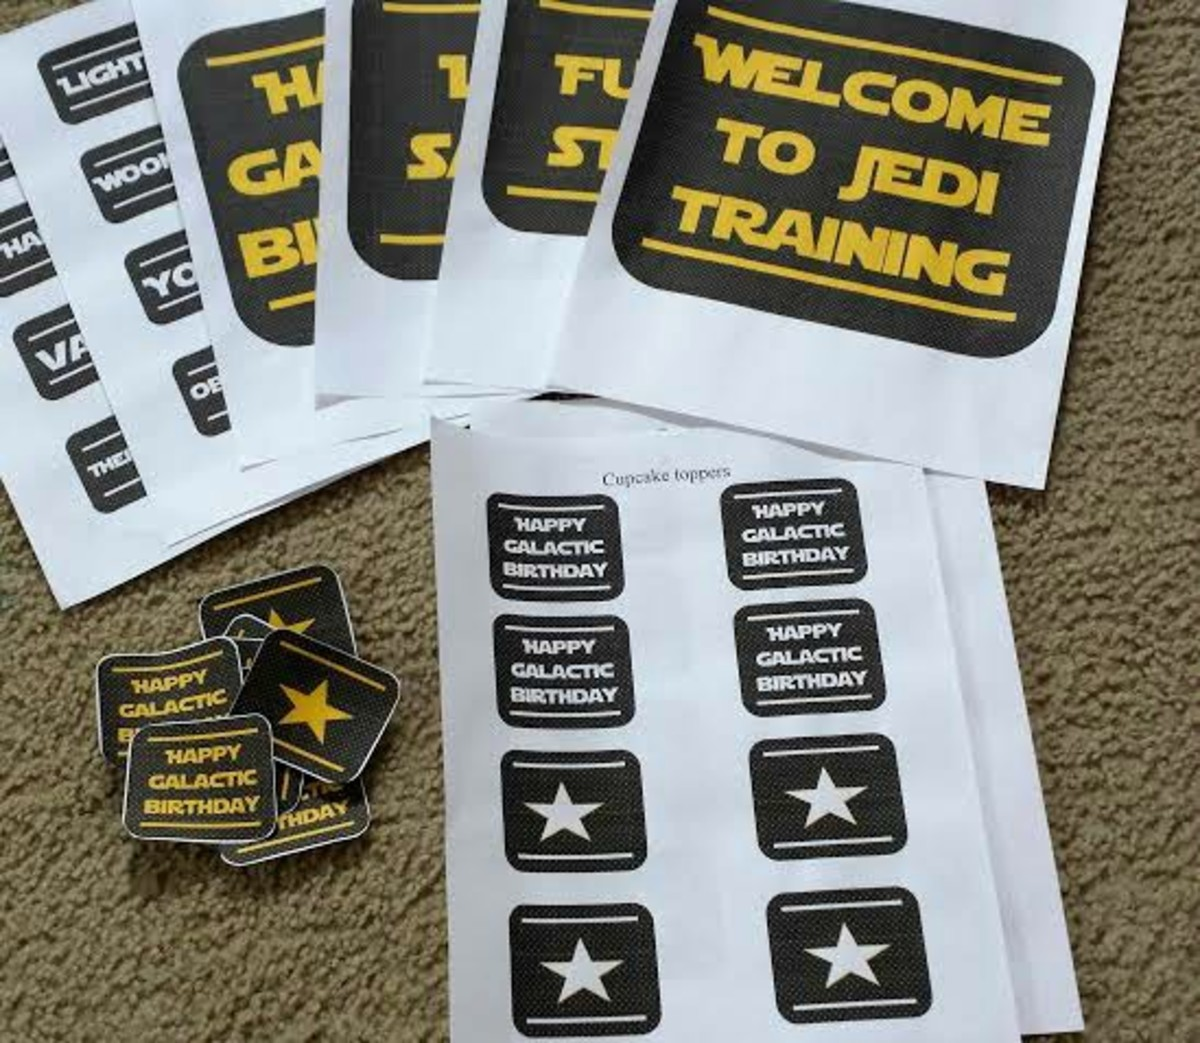 Free printables for these are online at allthingswithpurpose.com to make Star Wars Day or birthday party more fun.